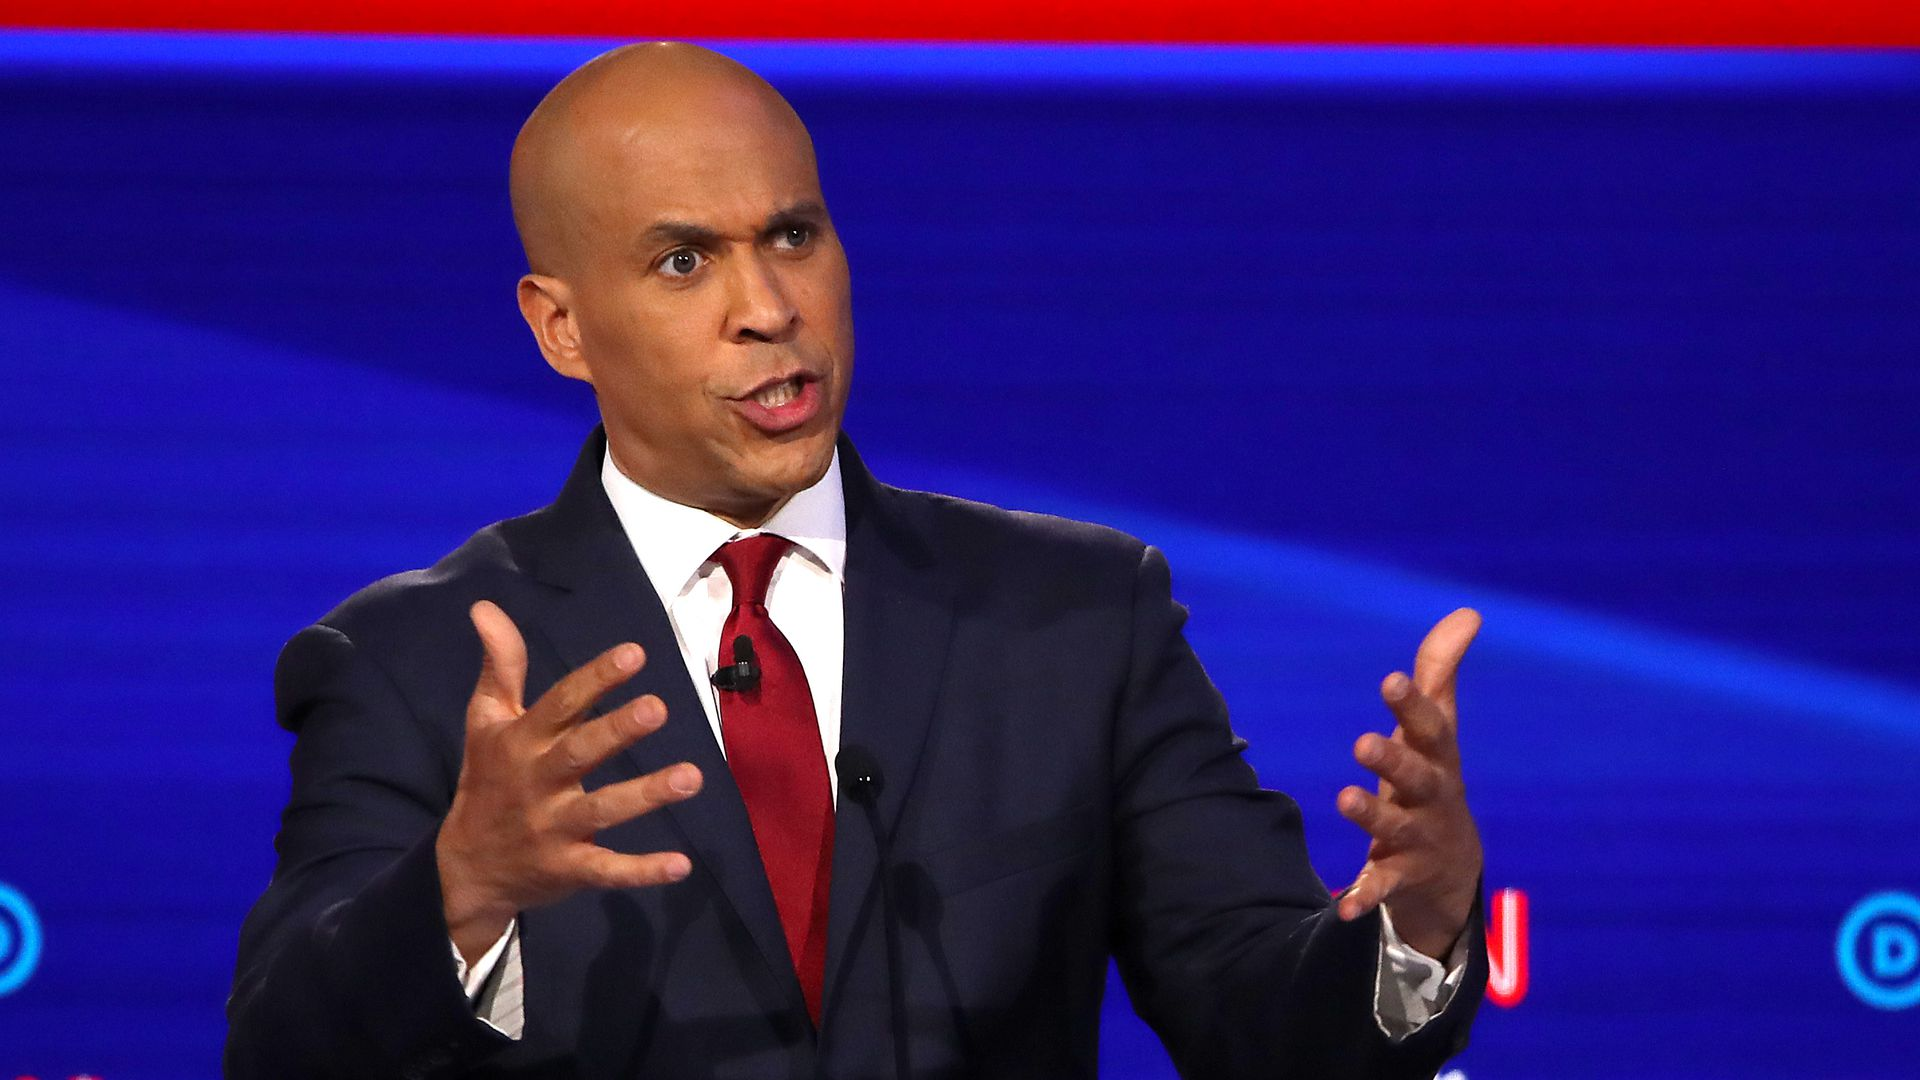 Sen. Cory Booker (D-NJ) speaks during the Democratic Presidential Debate at Otterbein University on October 15, 2019 in Westerville, Ohio.